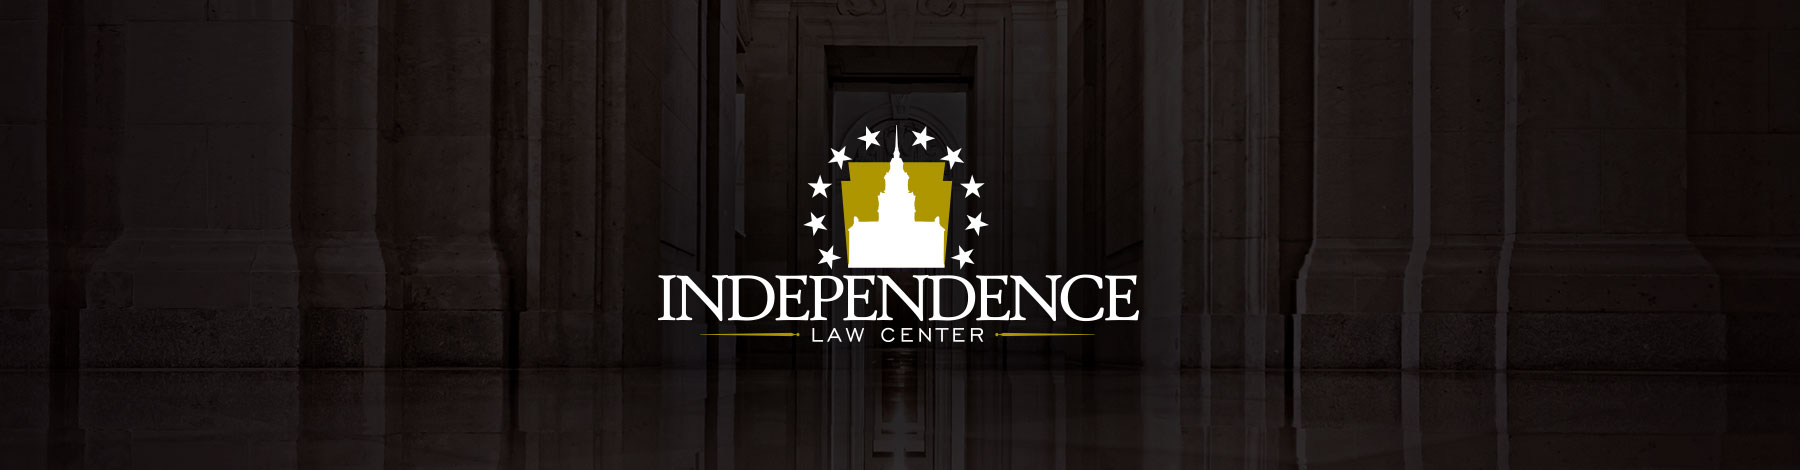 Independence Law Center